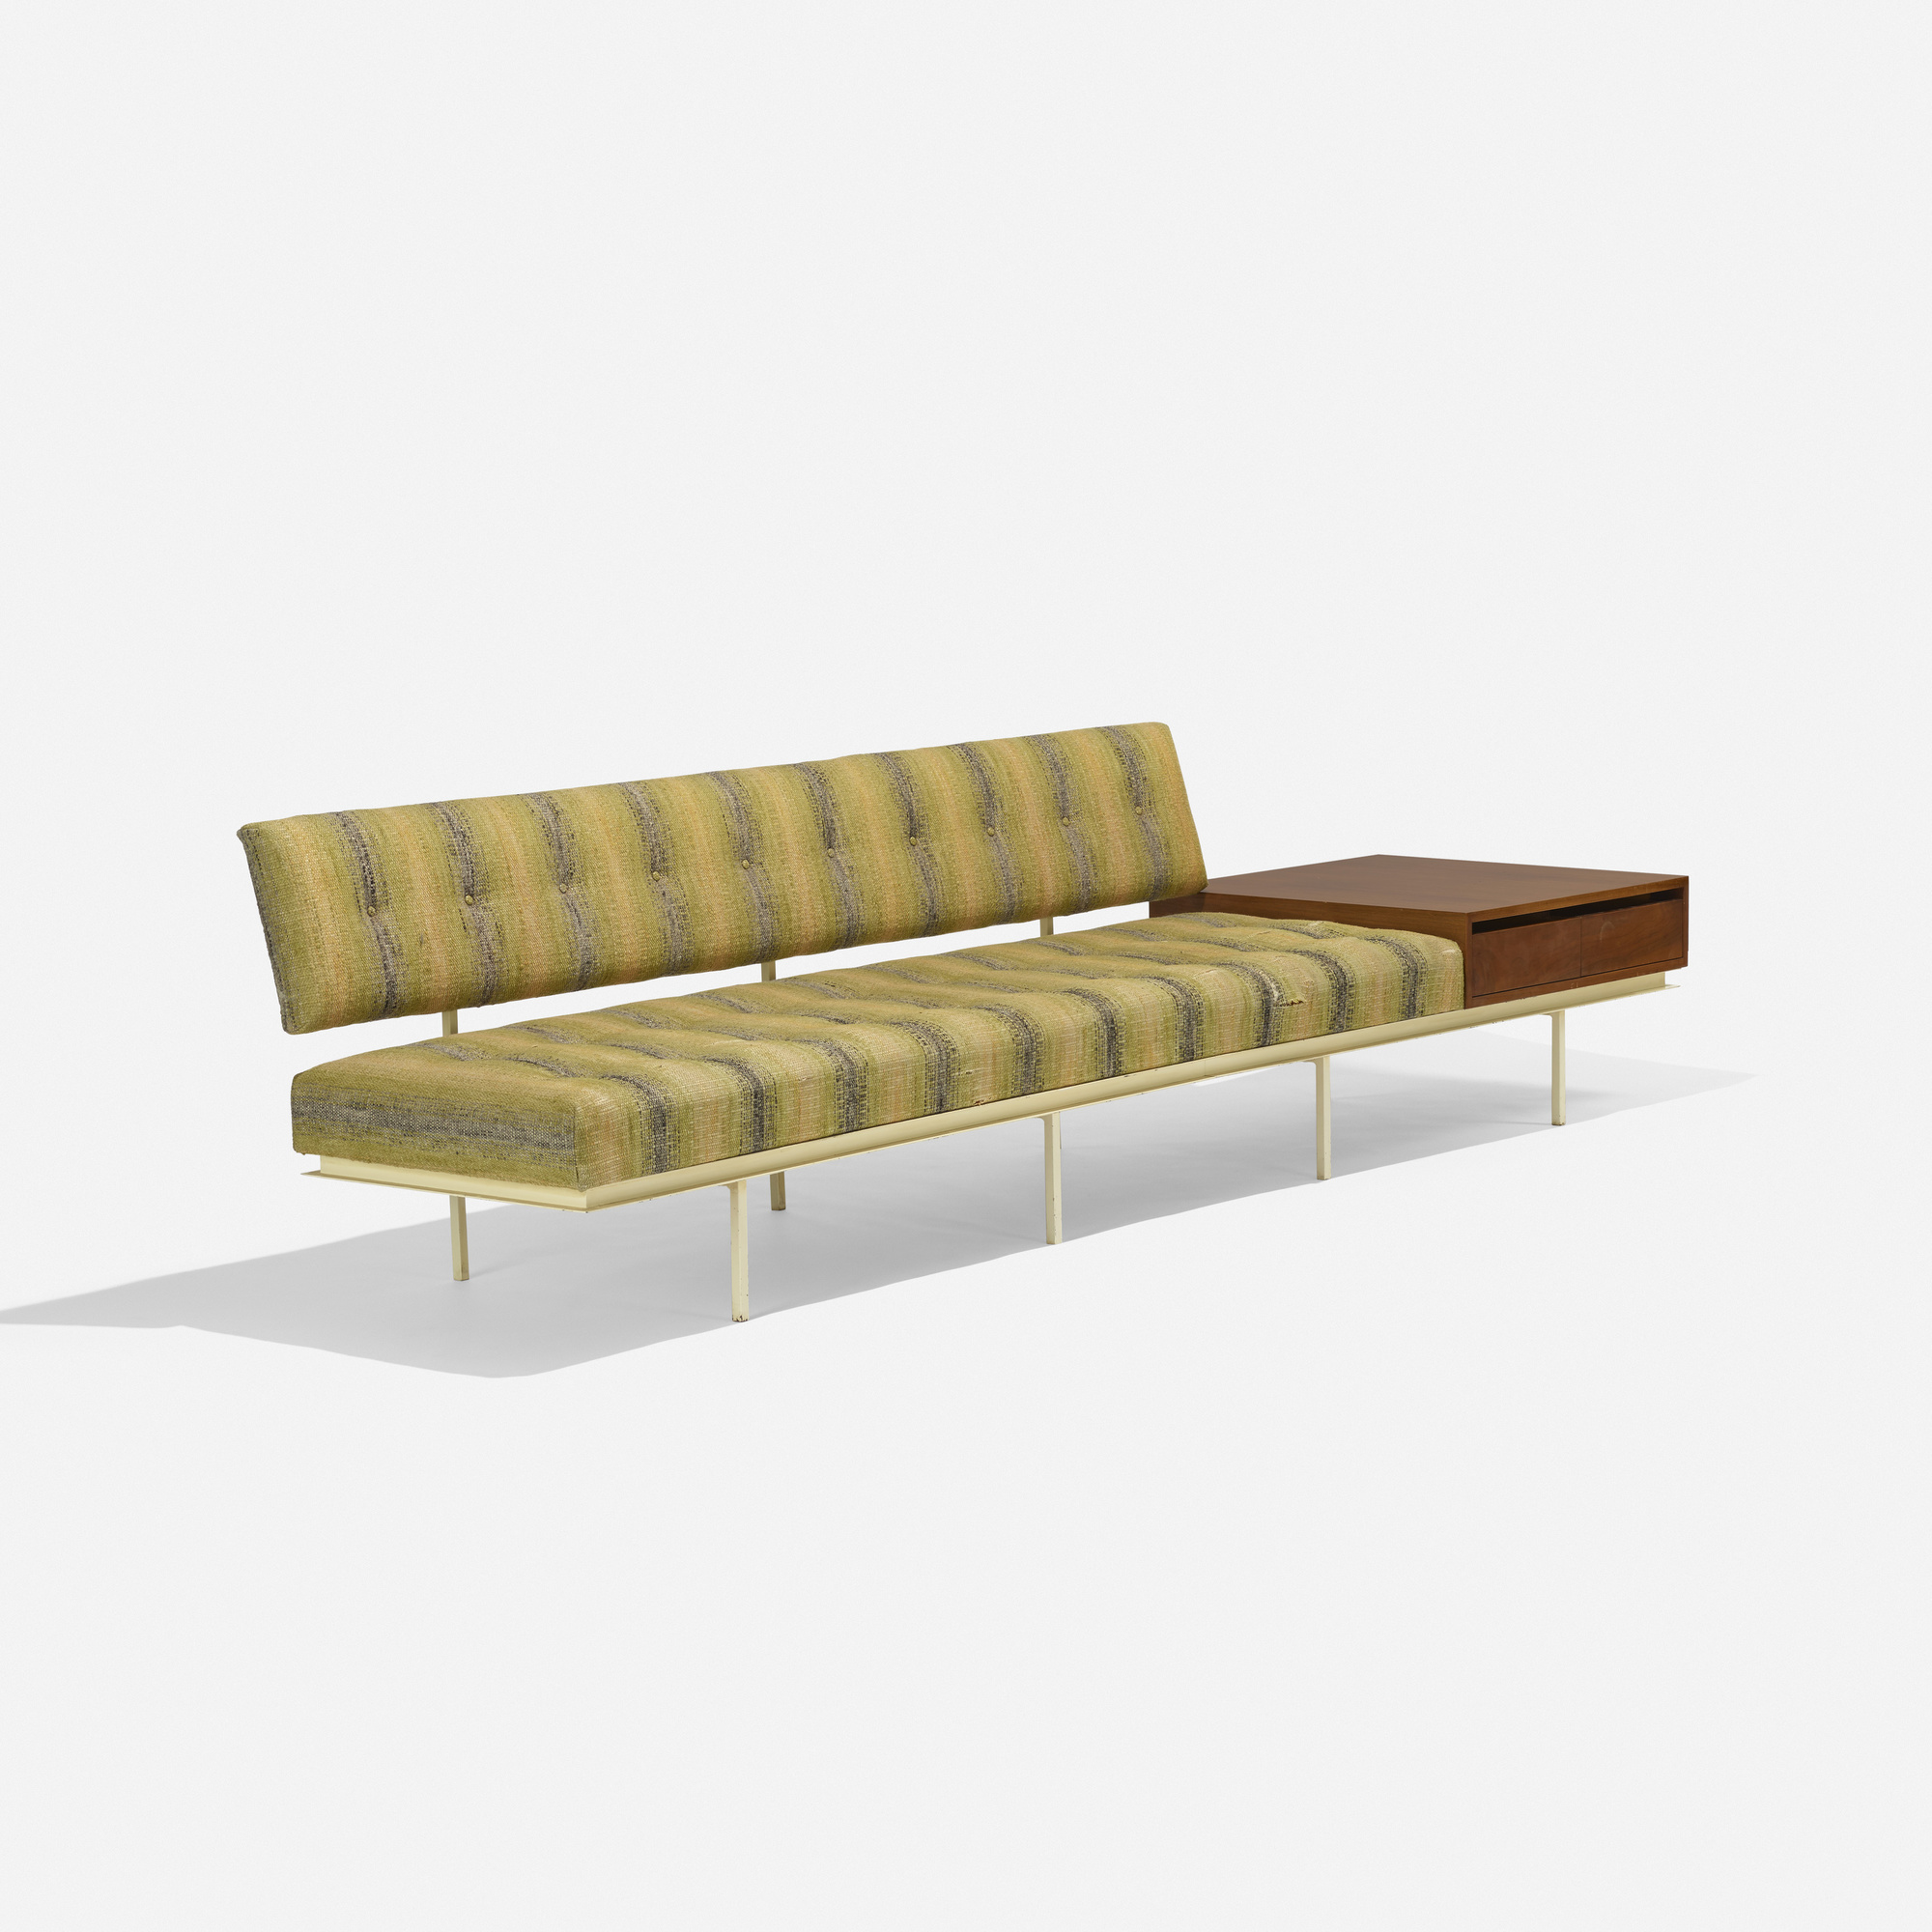 109 Florence Knoll sofa with attached table American Design